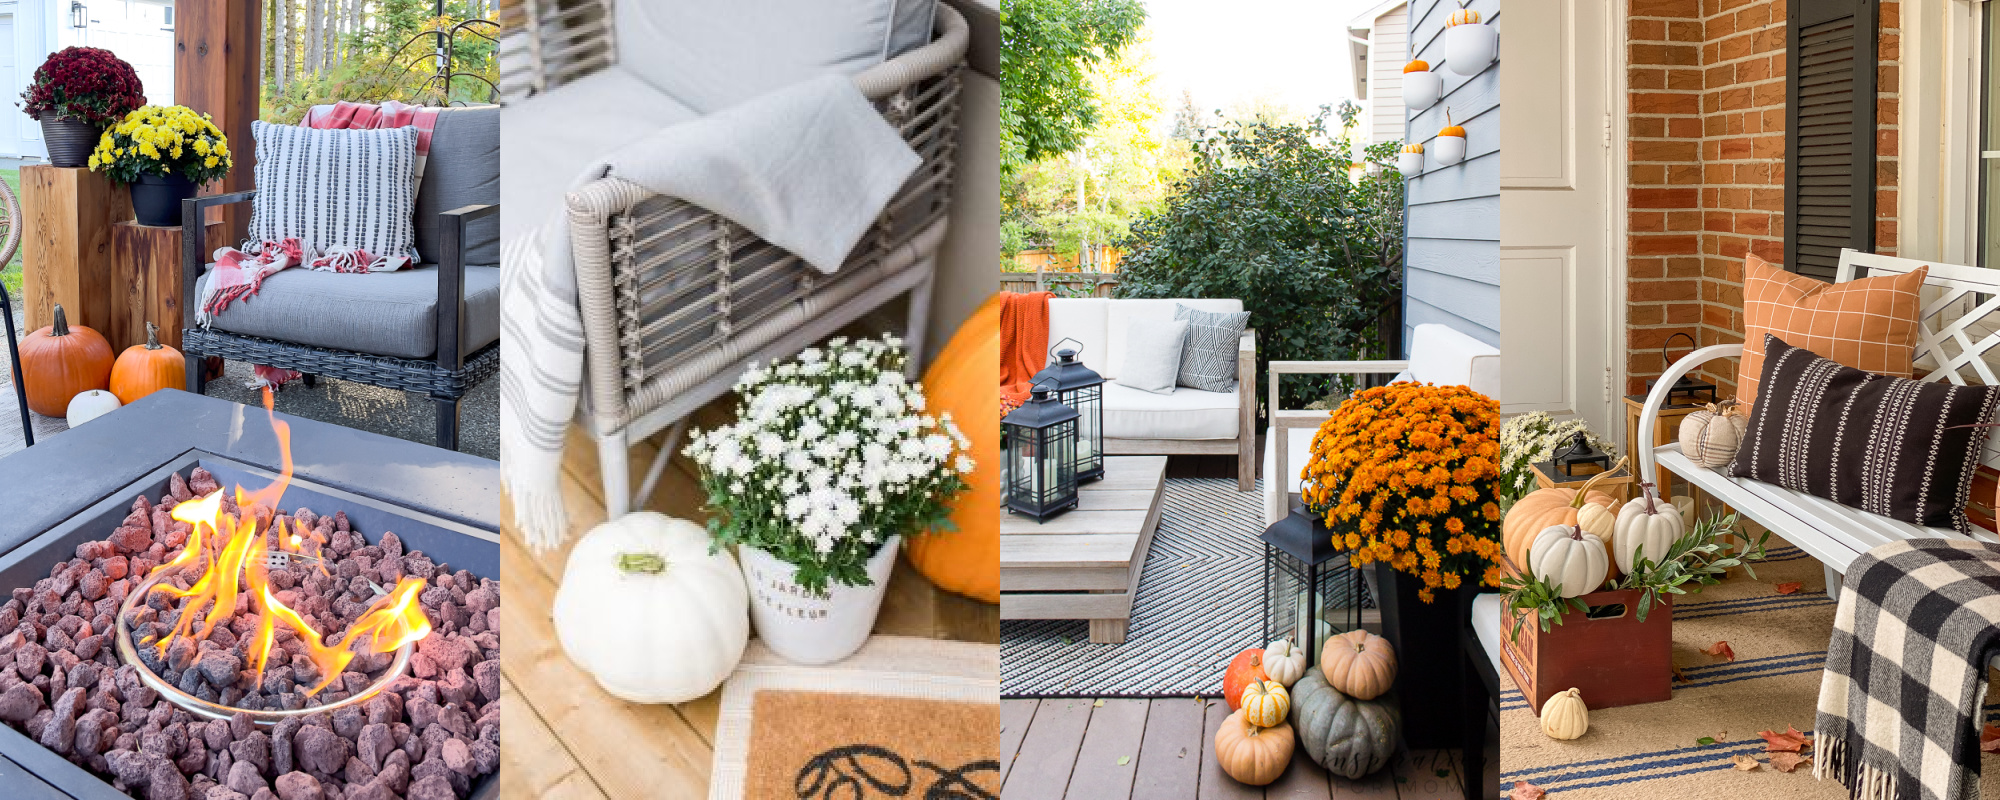 Outdoor spaces decorated for fall